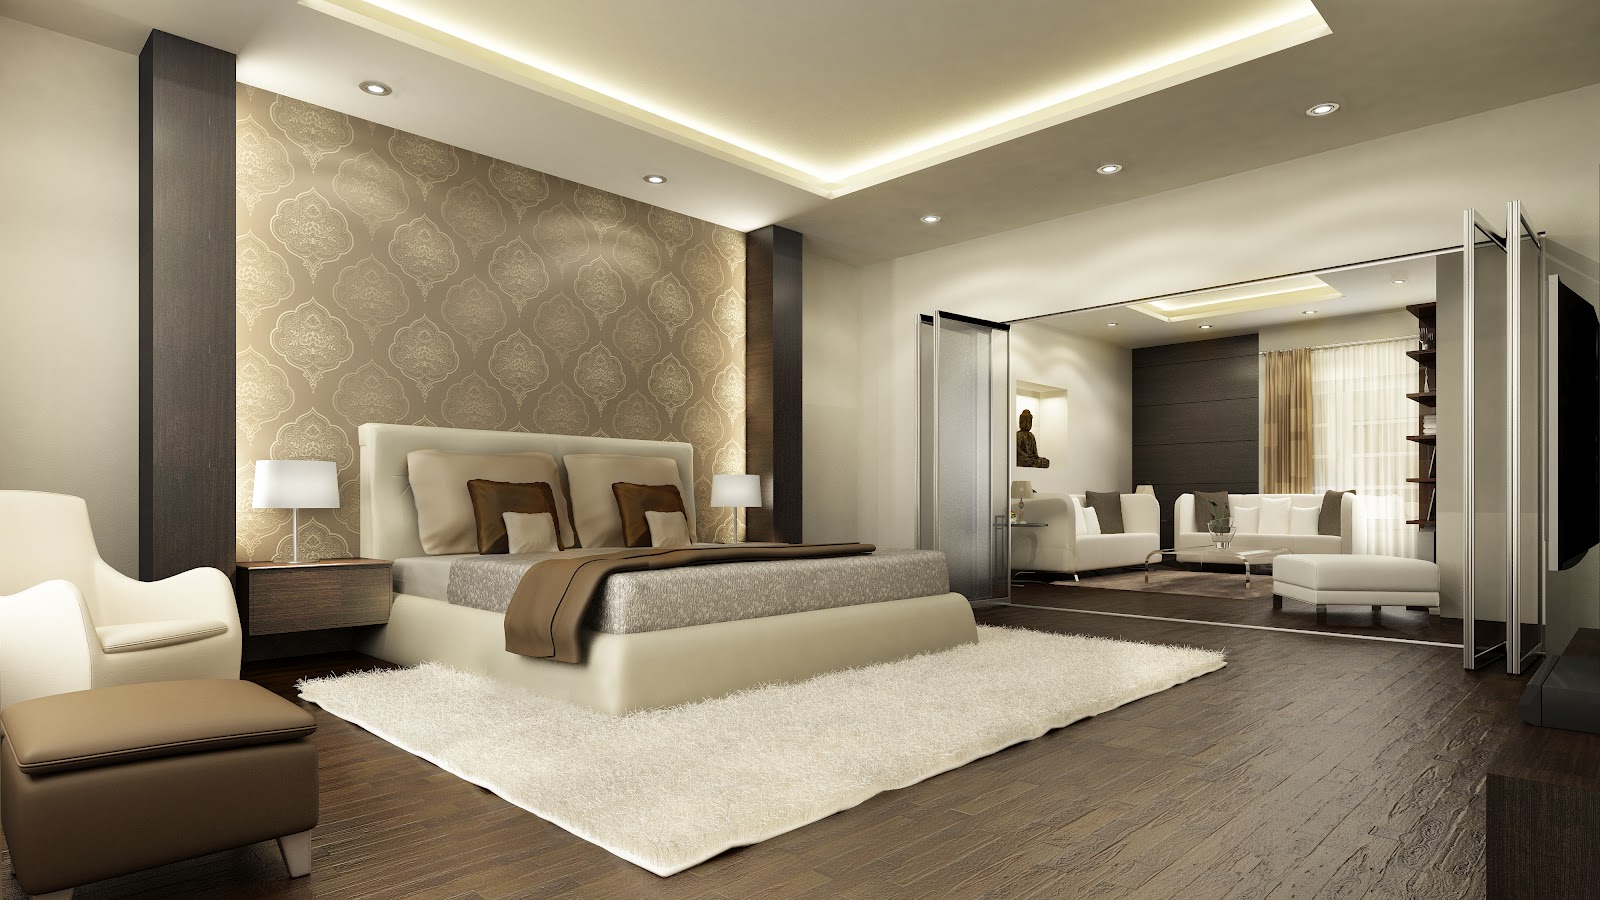 25 Best Bedroom Designs Ideas - The WoW Style on Best Master Bedroom Designs  id=87894